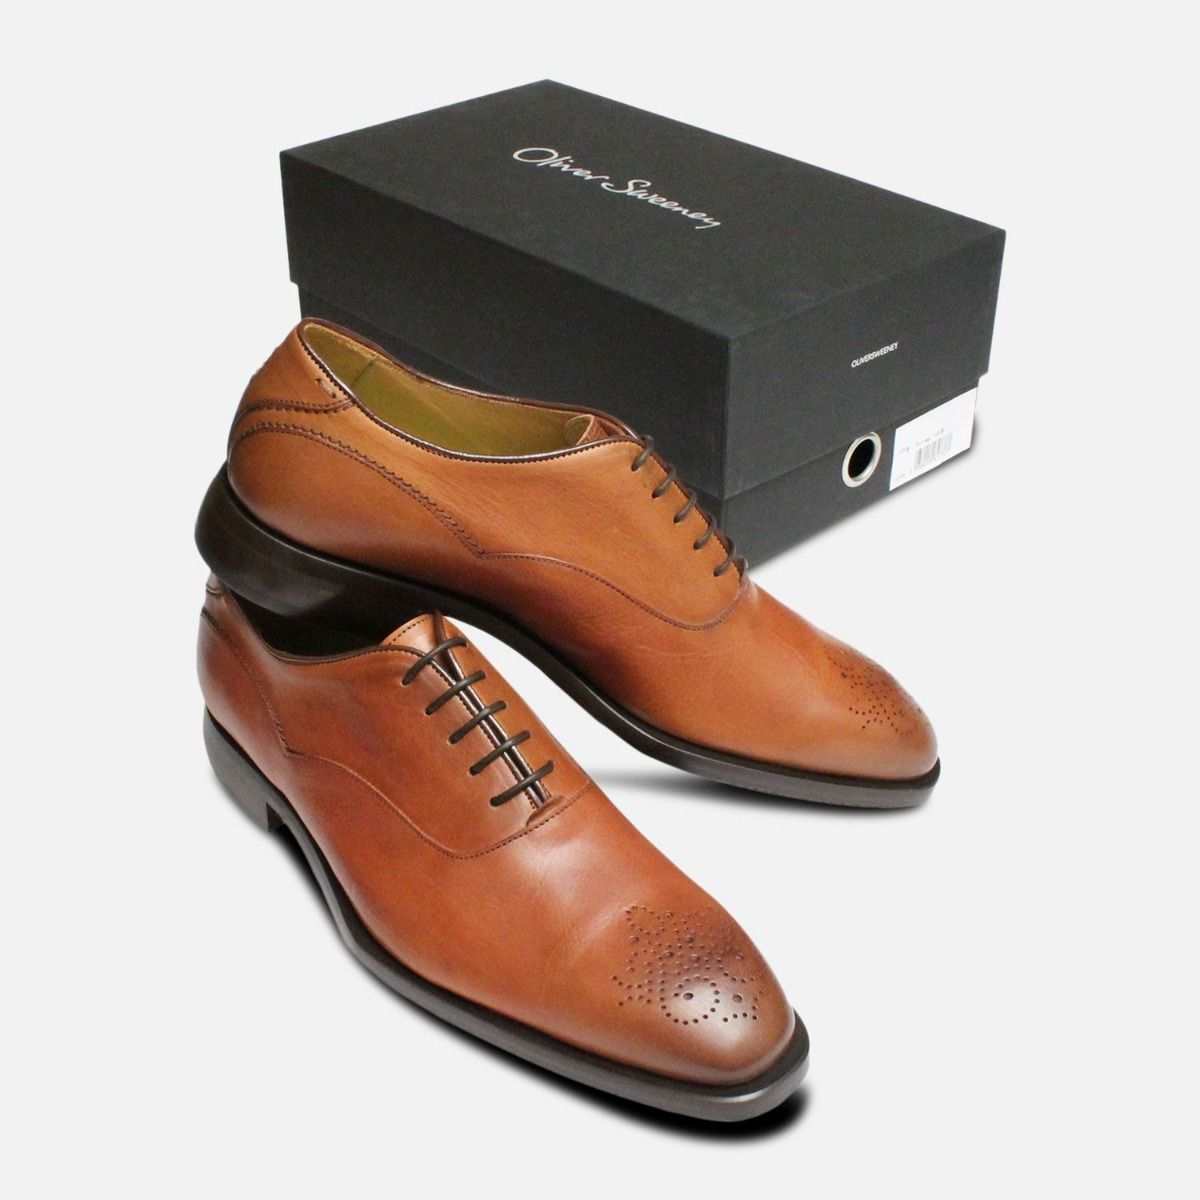 Oliver Sweeney Shoes Sabatini Cognac Brogues